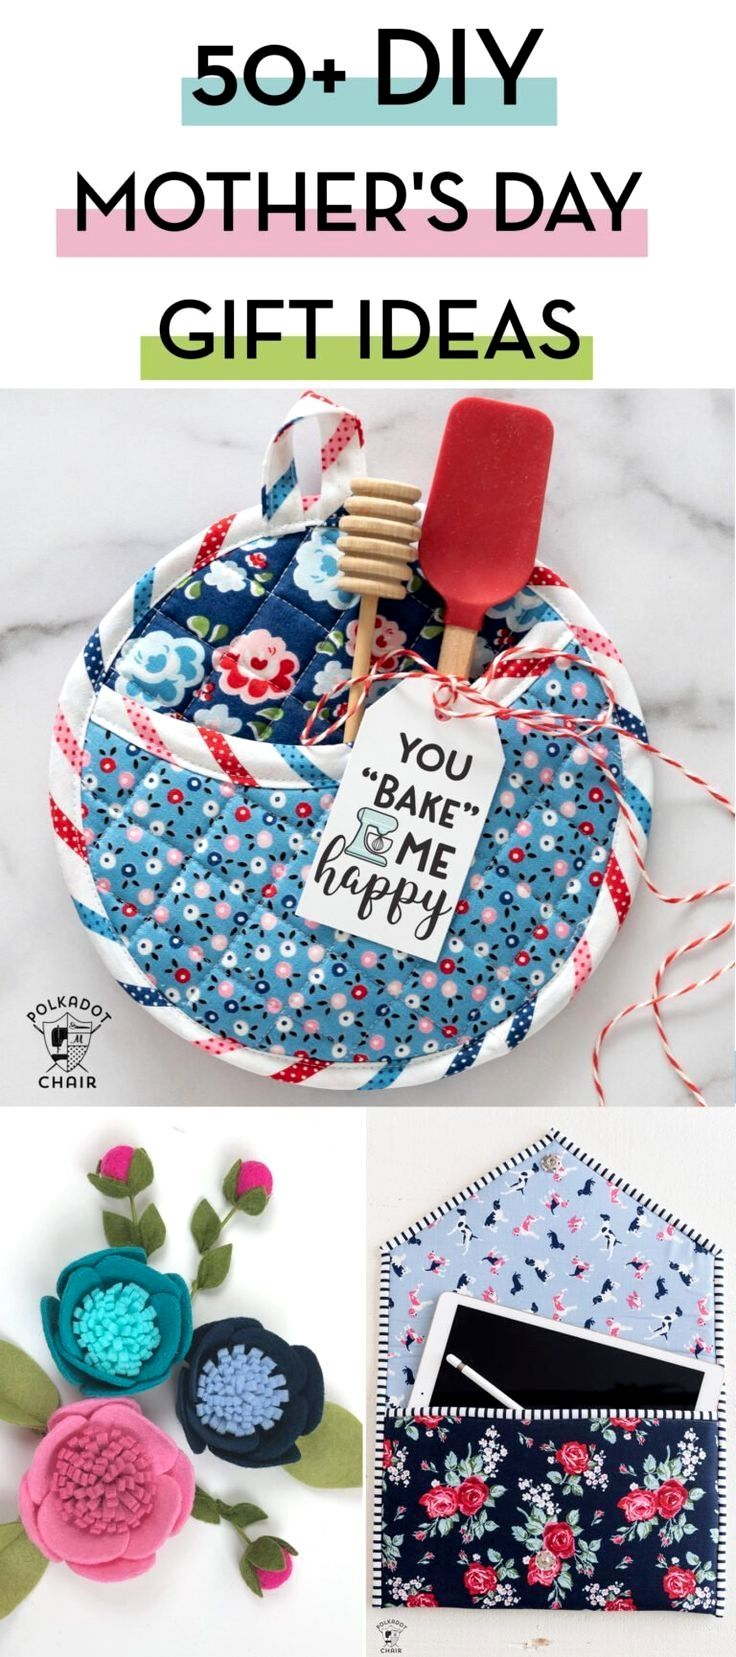 Pin by duseev.den on Sewing in 2020 Mother's day diy